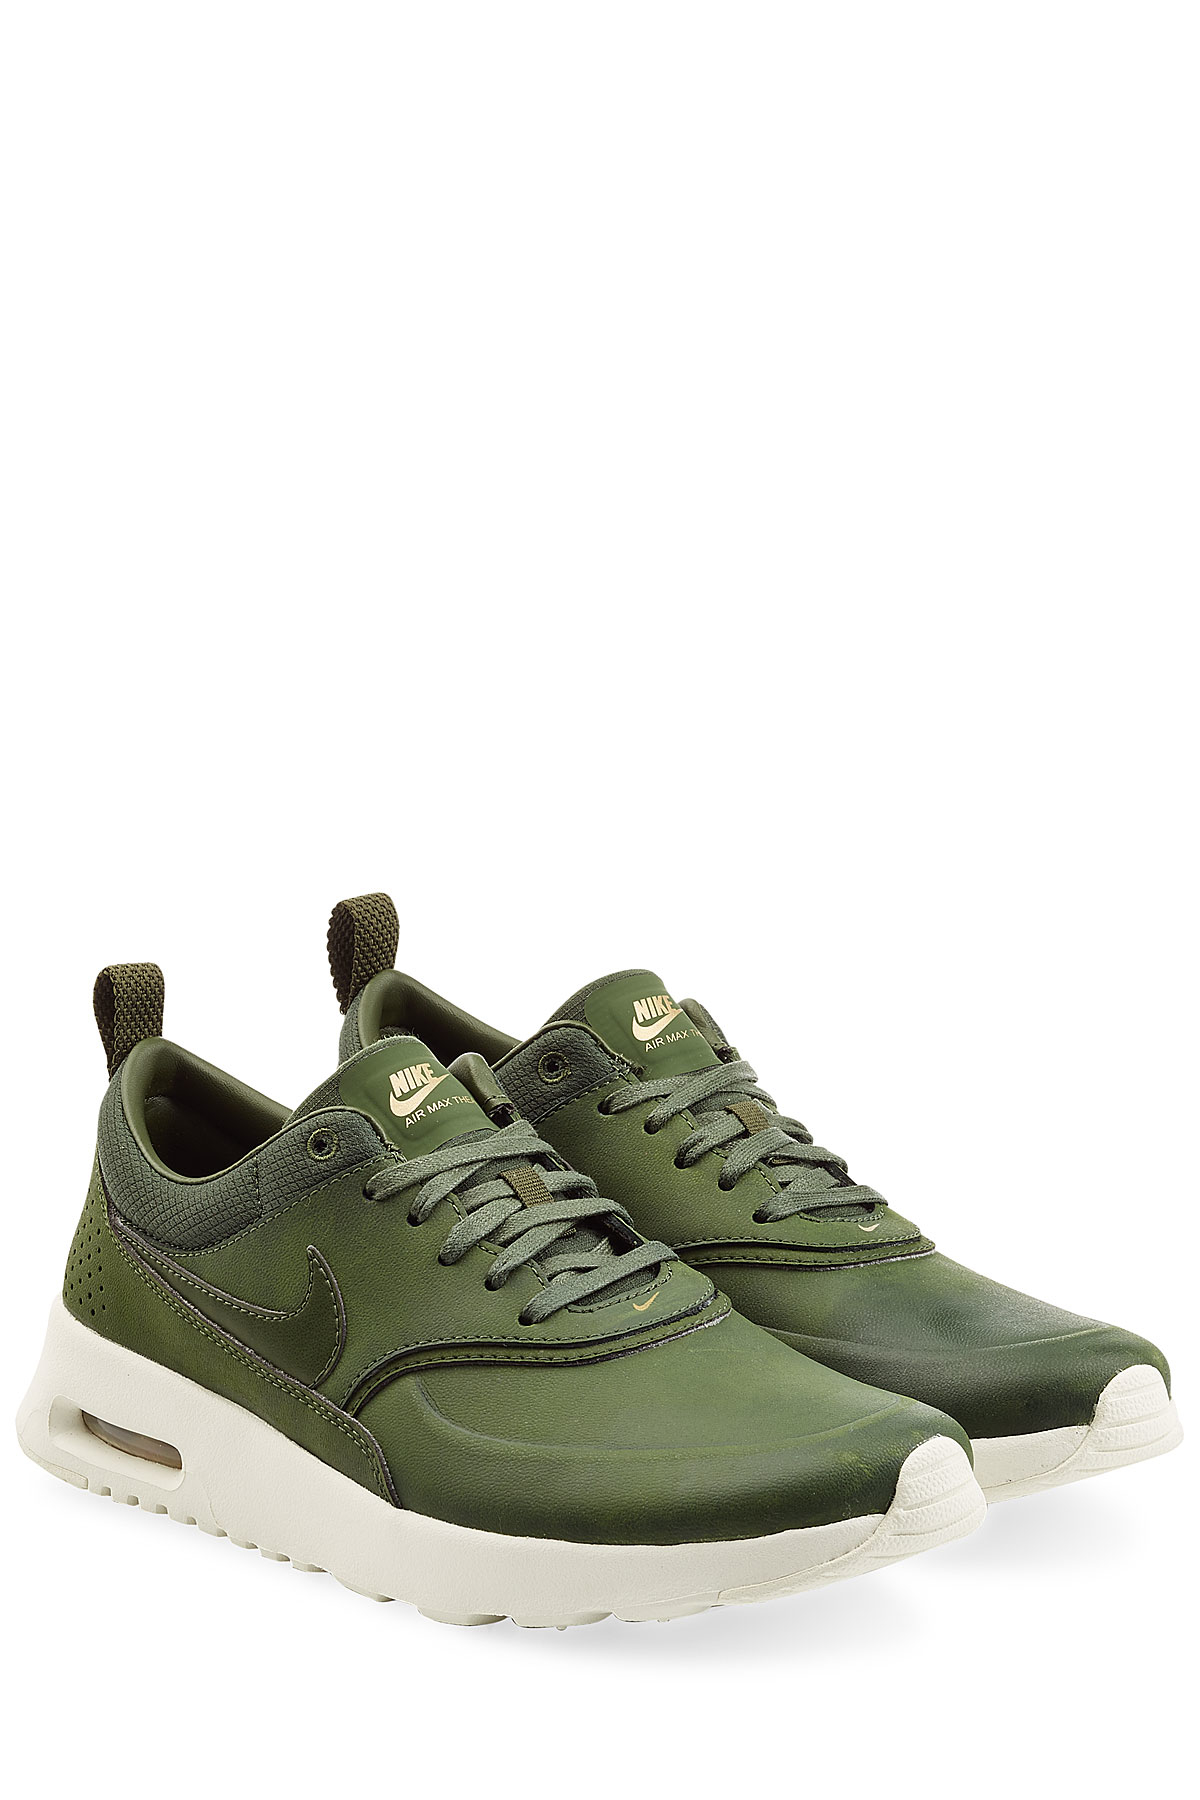 Kaki Groen Lyst - Nike Air Max Thea Premium Leather Sneakers - Green